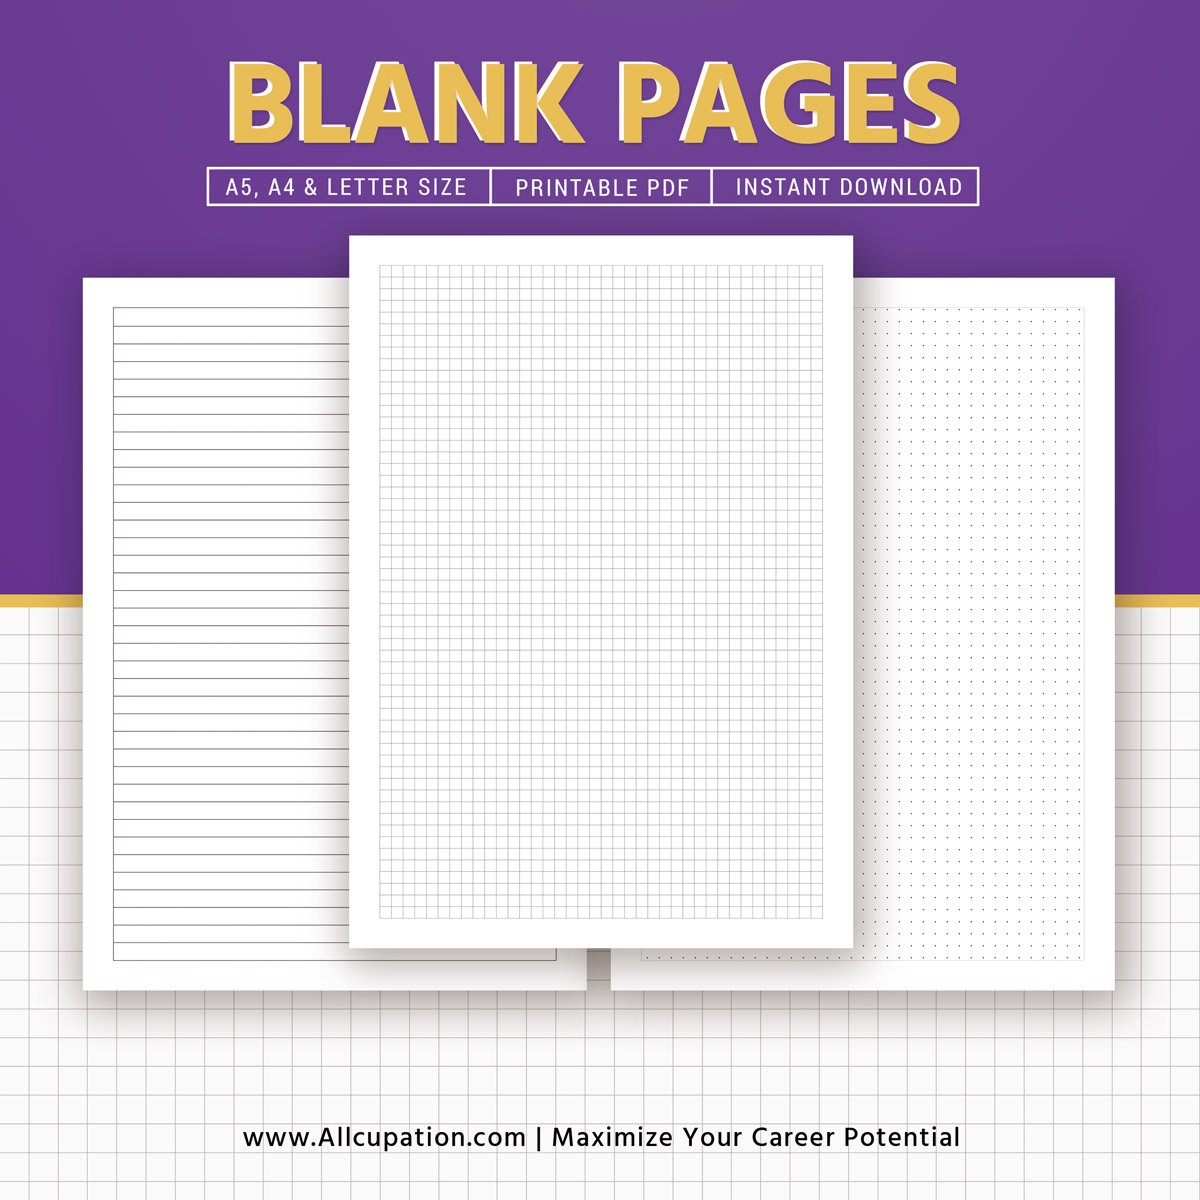 image regarding Free Planner Refills Printable named Printable Blank Planner, Blank Web pages, Sq. Grid, Dominated, Planner Inserts, A5, A4, Letter, Planner Refills, Planner Style, Least difficult Planner, Immediate